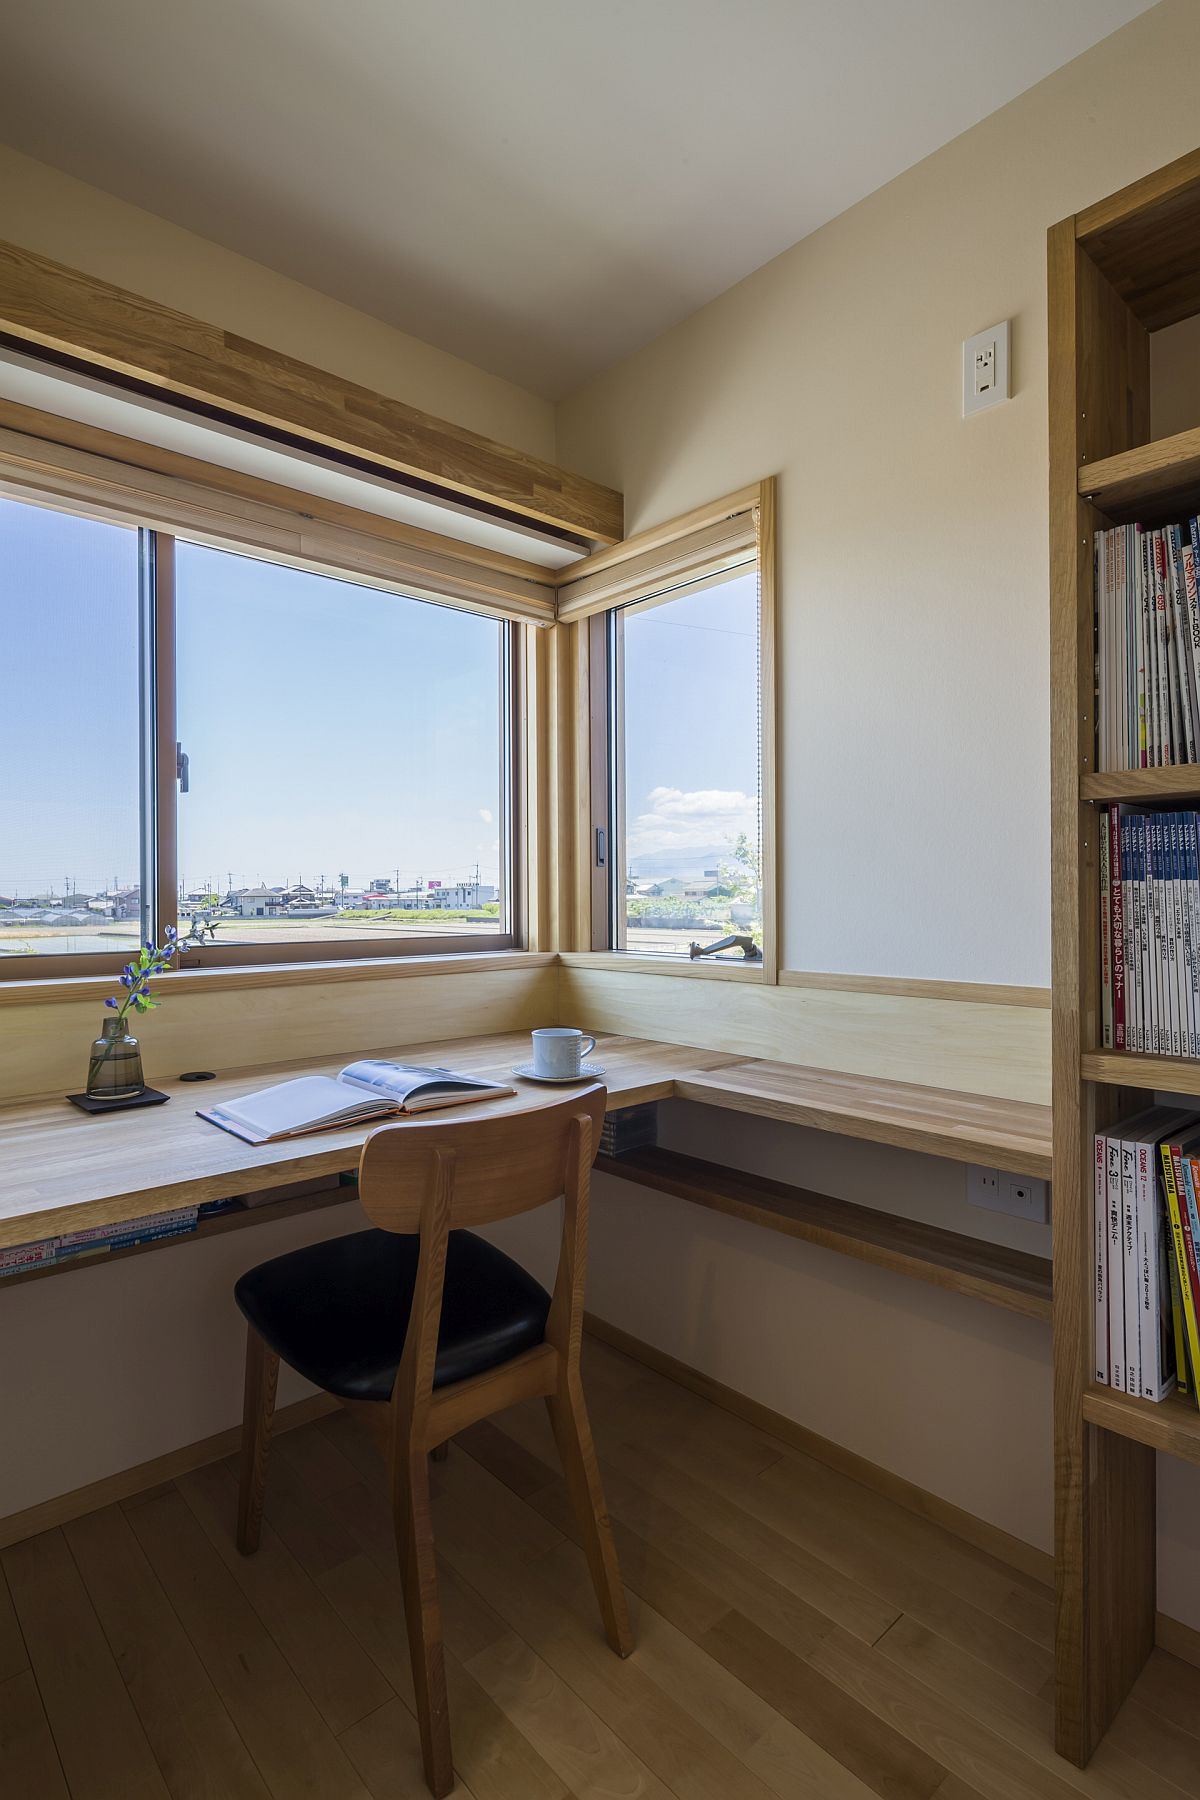 Home office with corner window that offers lovely view of the landscape